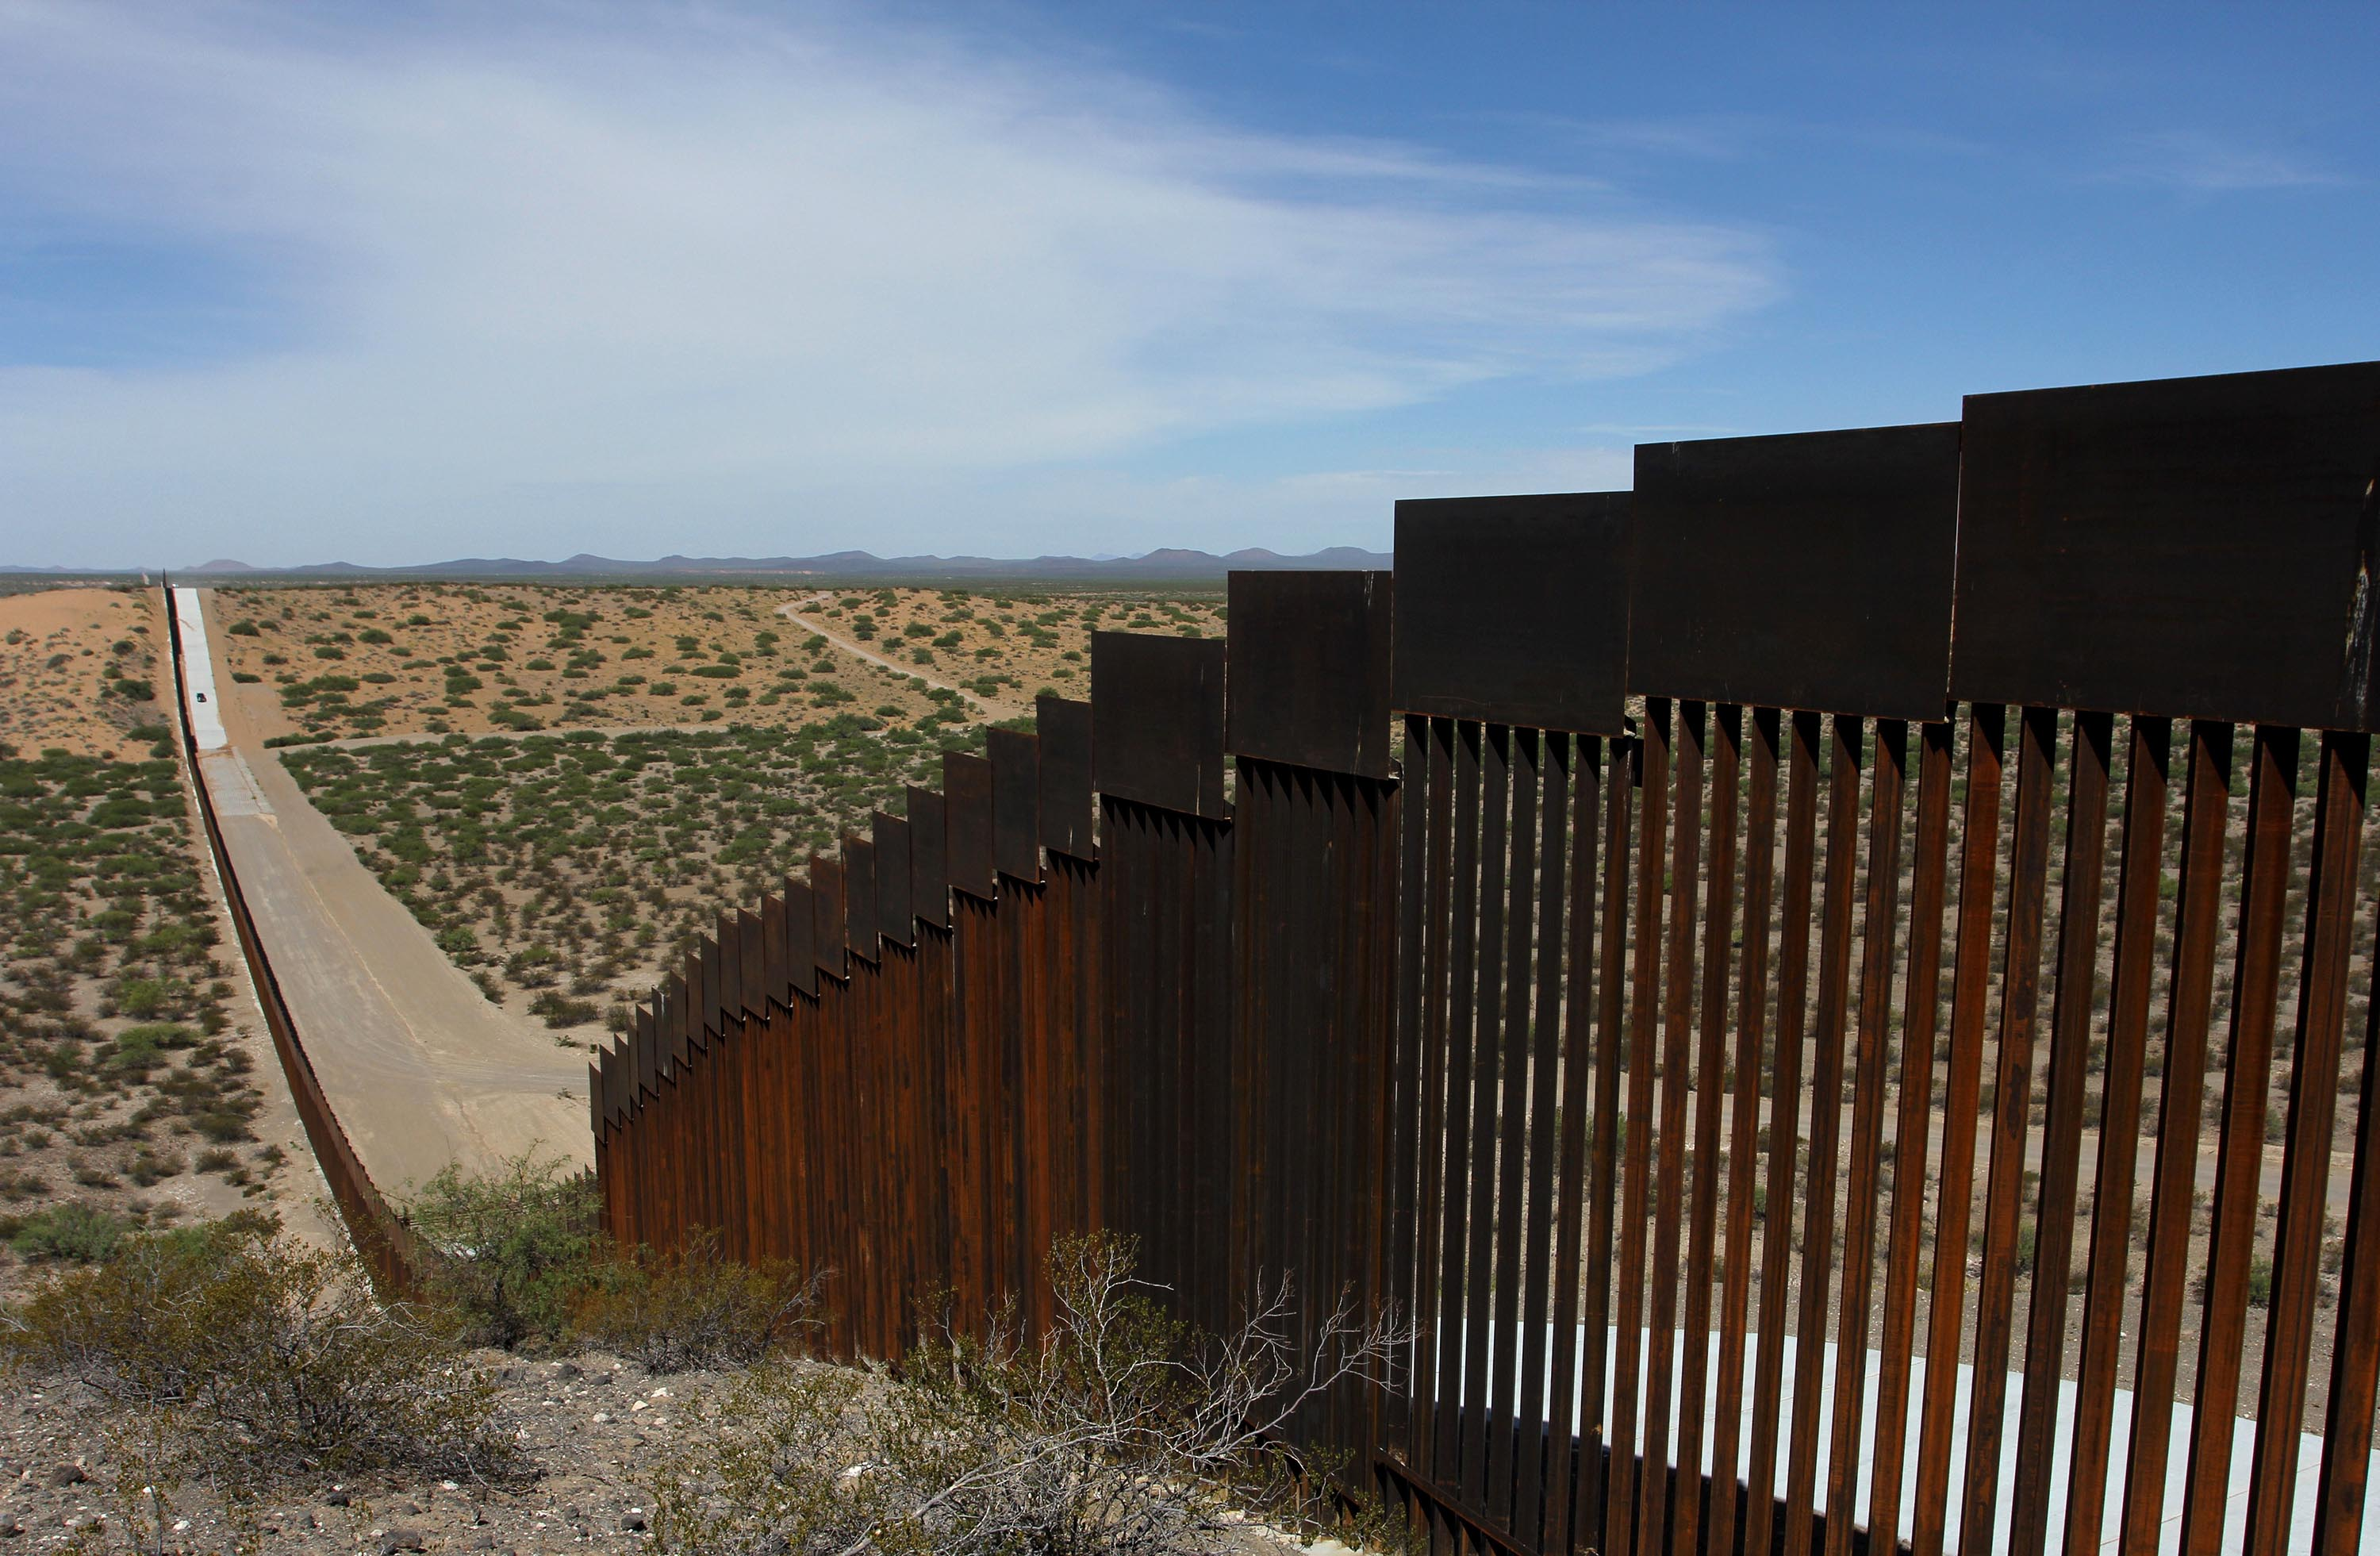 Border agency provided inconsistent medical care to migrants in custody, watchdog finds